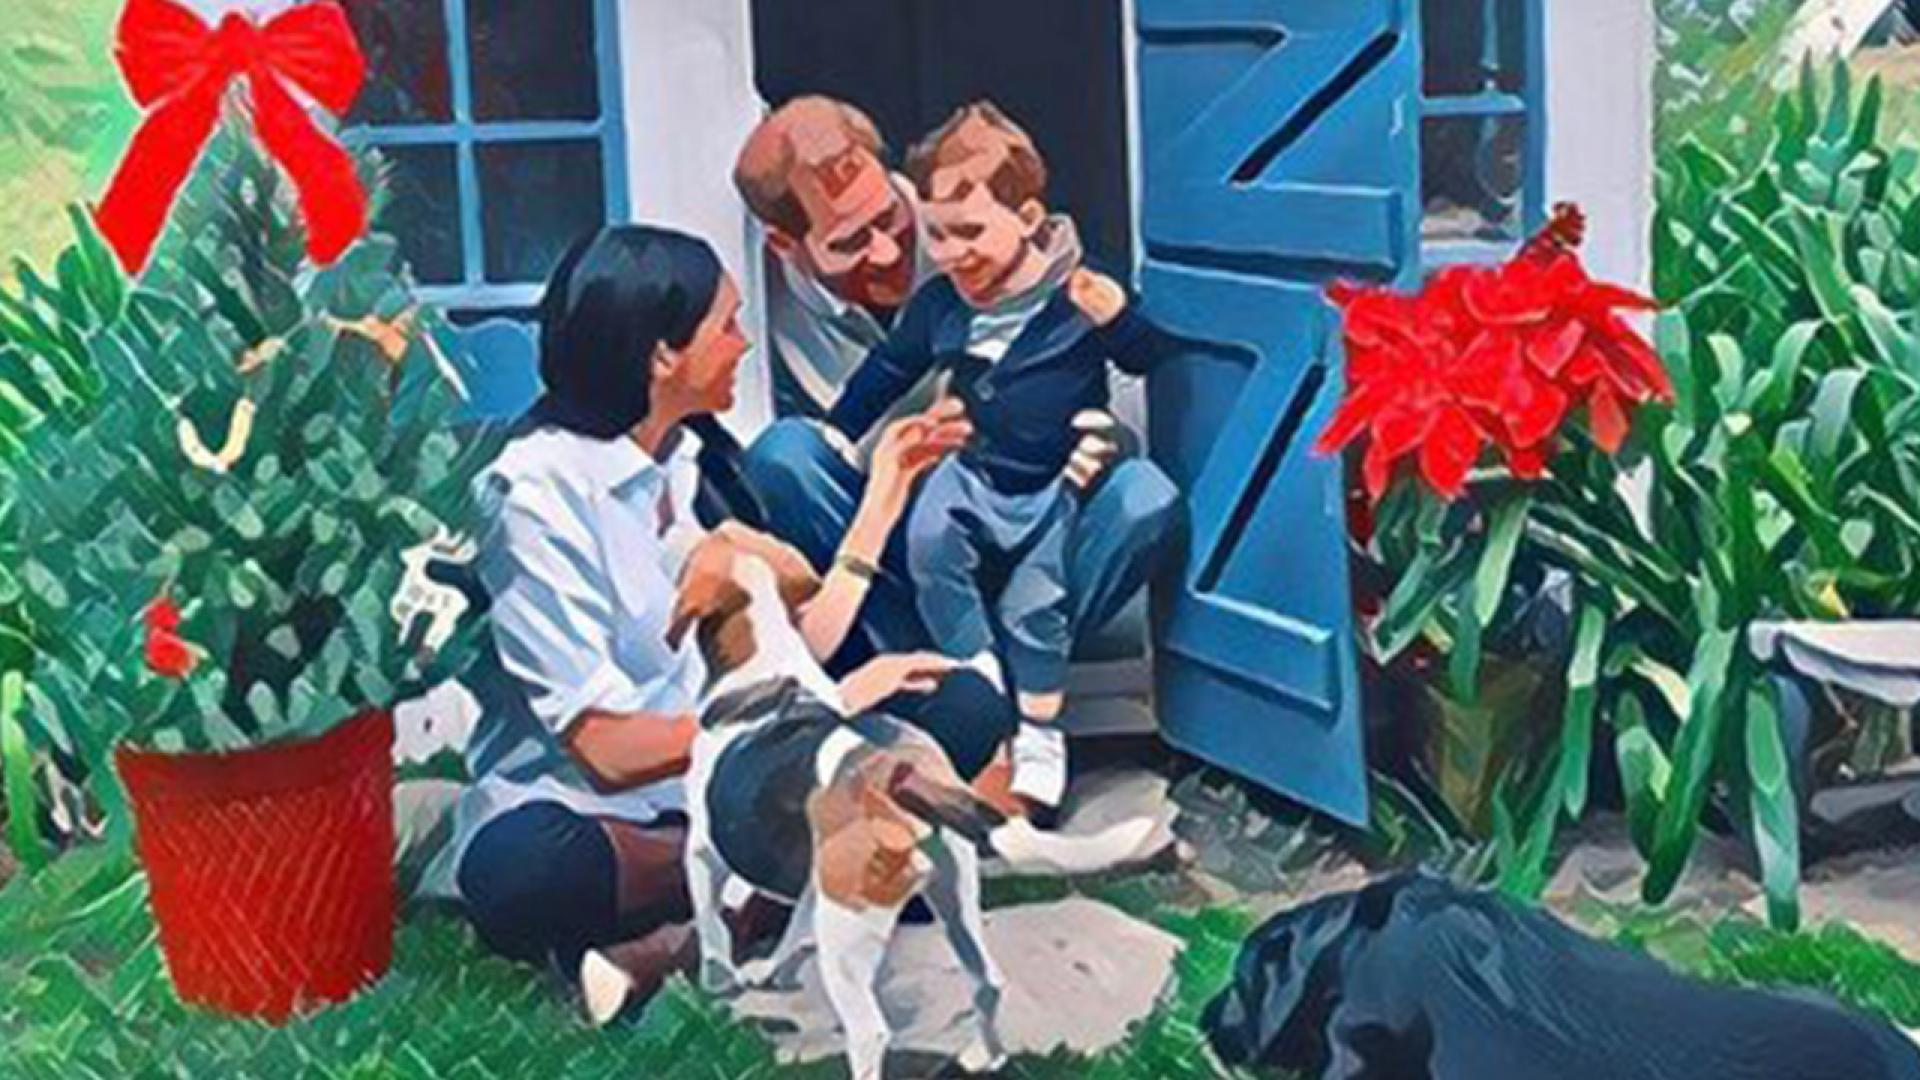 Meghan Markle, Prince Harry, Archie and their dogs appear in a Christmas card promoting animal adoption.